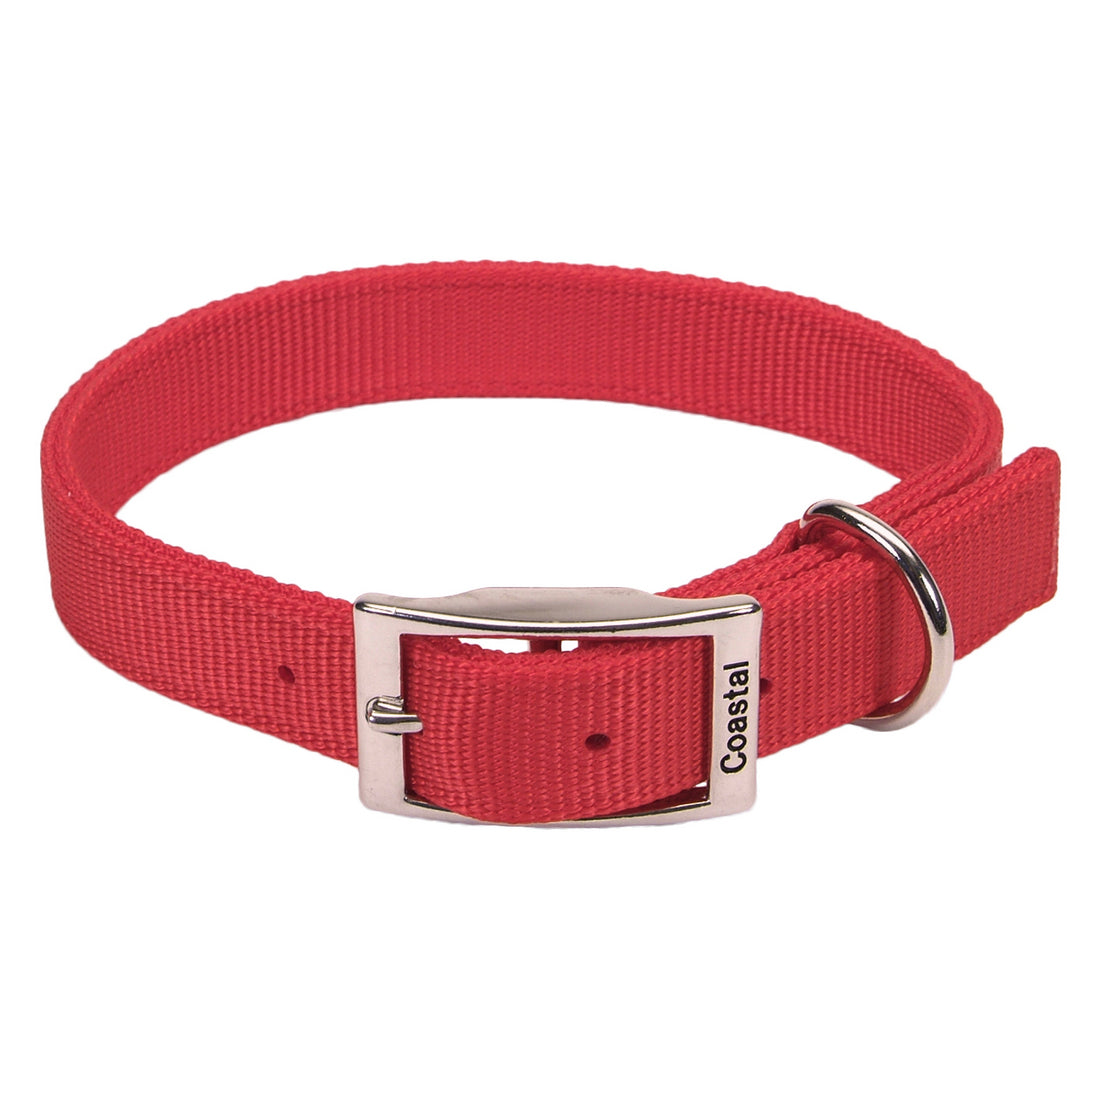 "Coastal Double Nylon Collar 20"" Red"